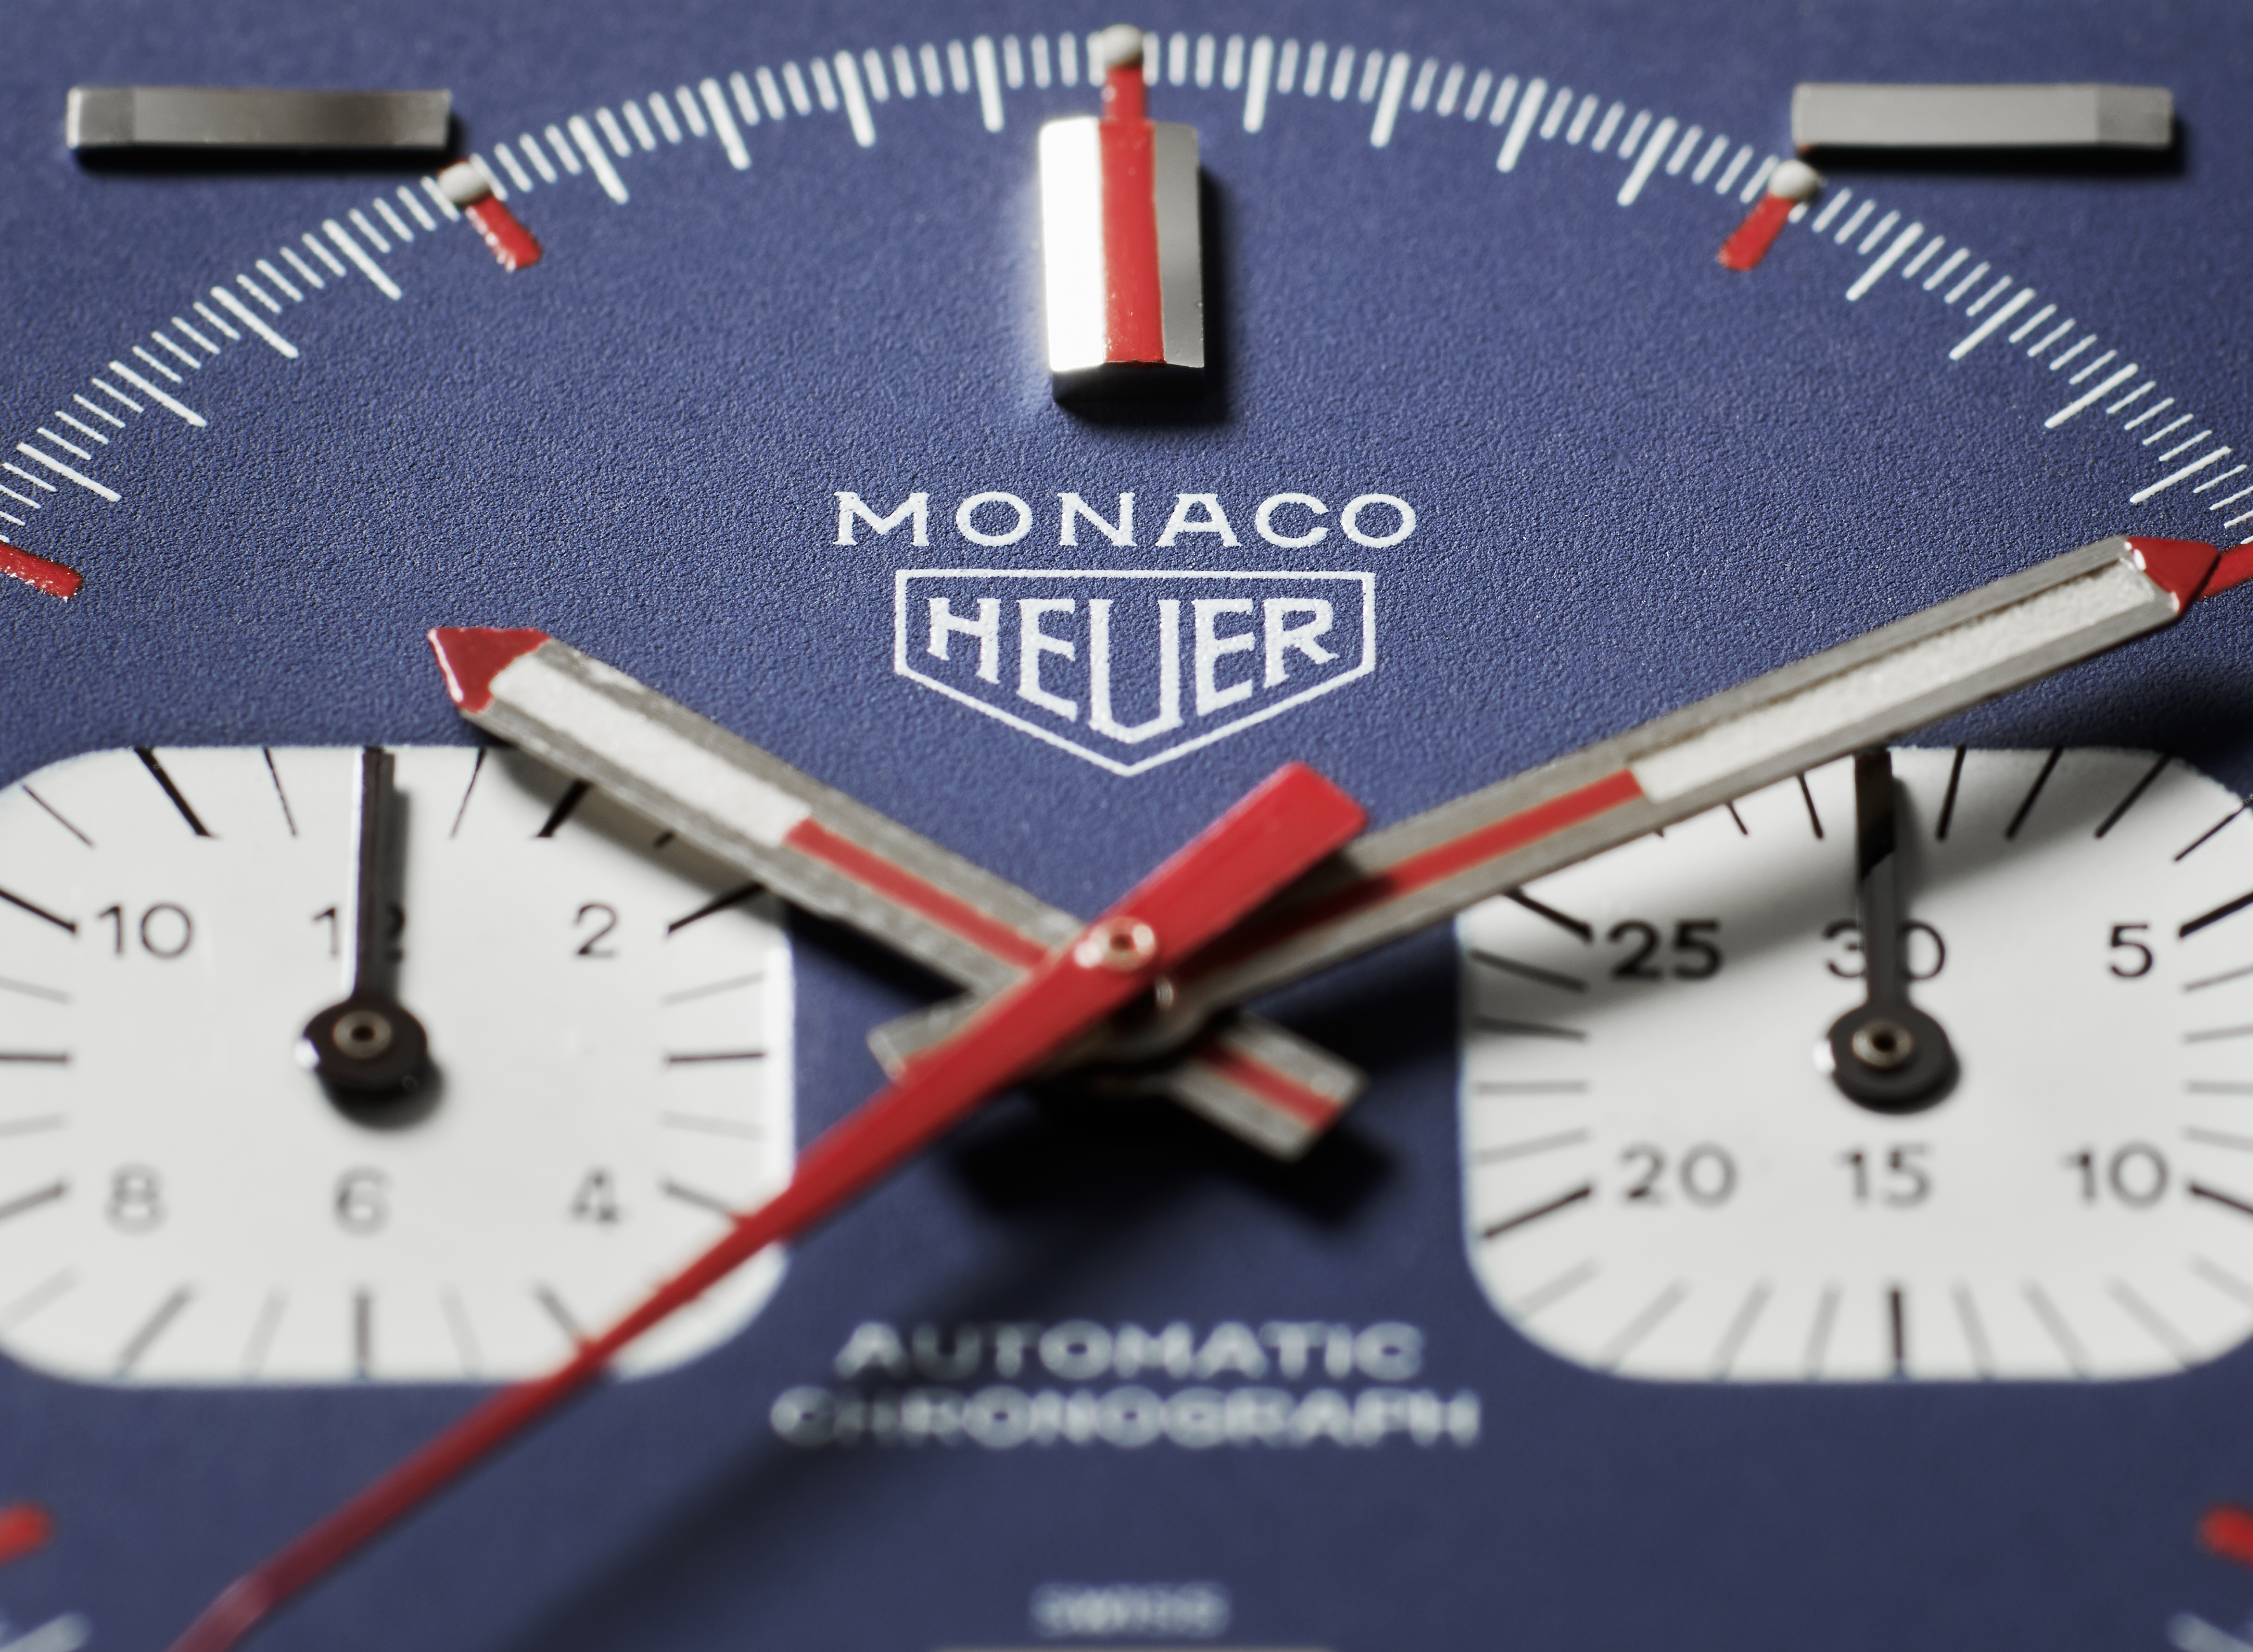 TAG Heuer creates special timepiece to mark 50 years of the Monaco